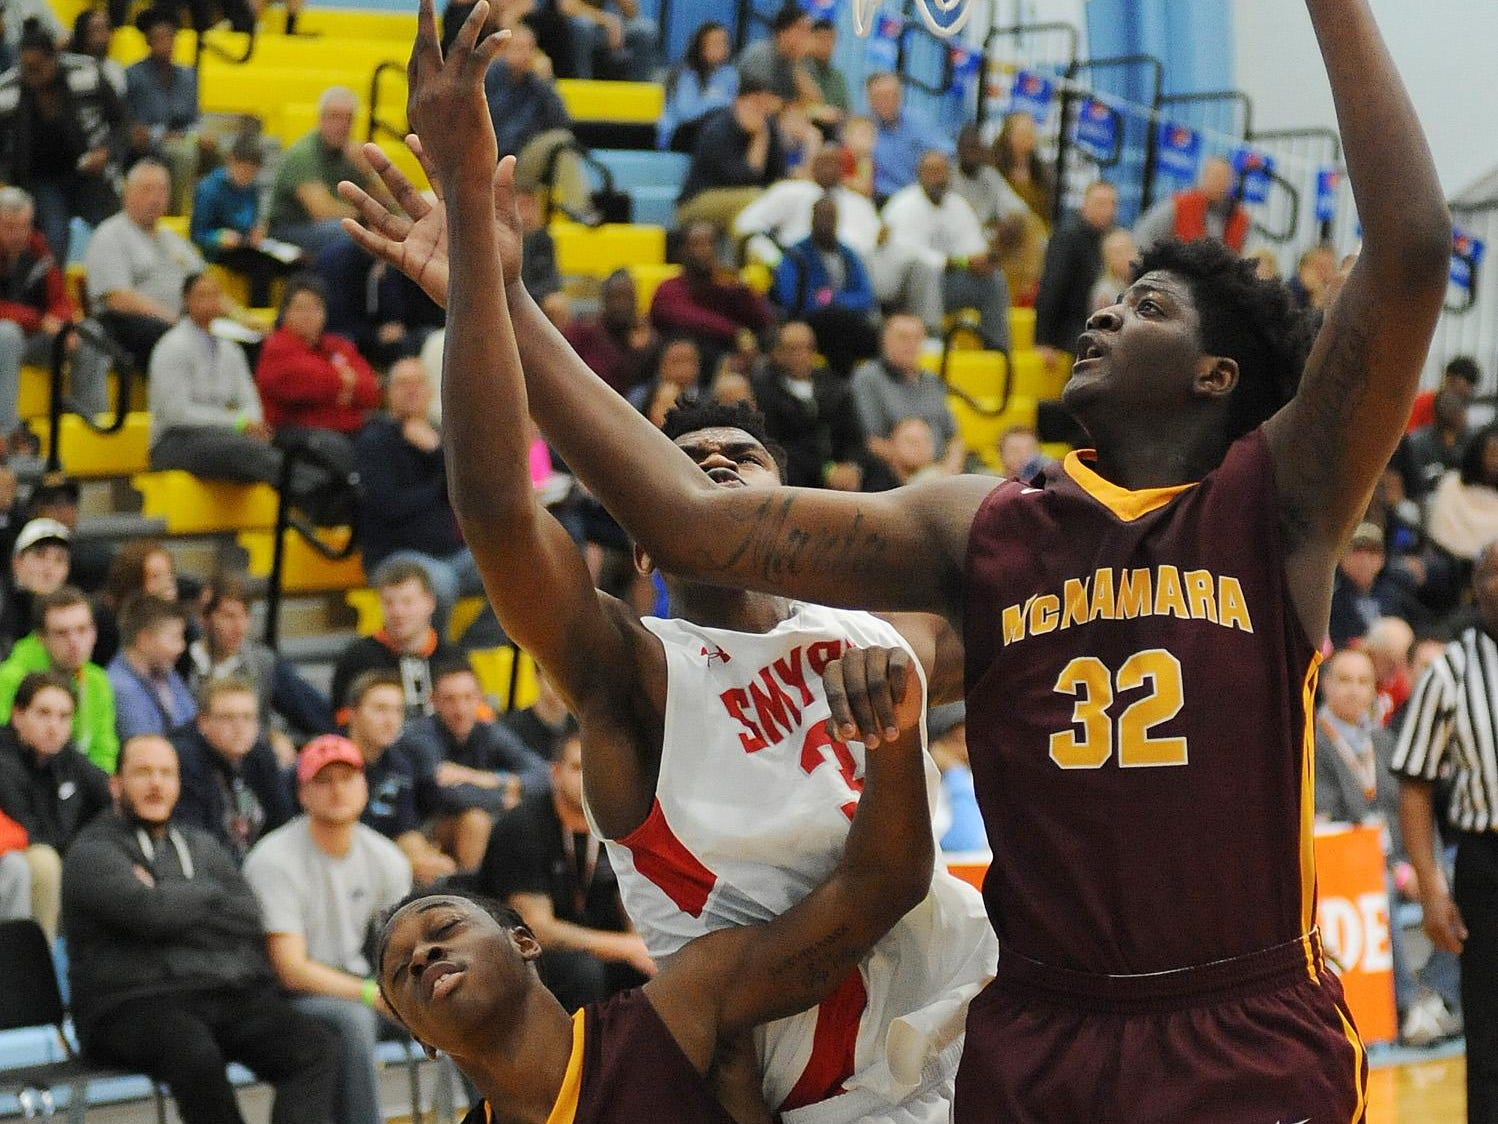 The Annual Slam Dunk to the Beach Basketball Tournament started at Cape Henlopen High School in Lewes on Tuesday December 27th with Smyrna HS (white) hosting Bishop McNamara HS from Forestville, Md.